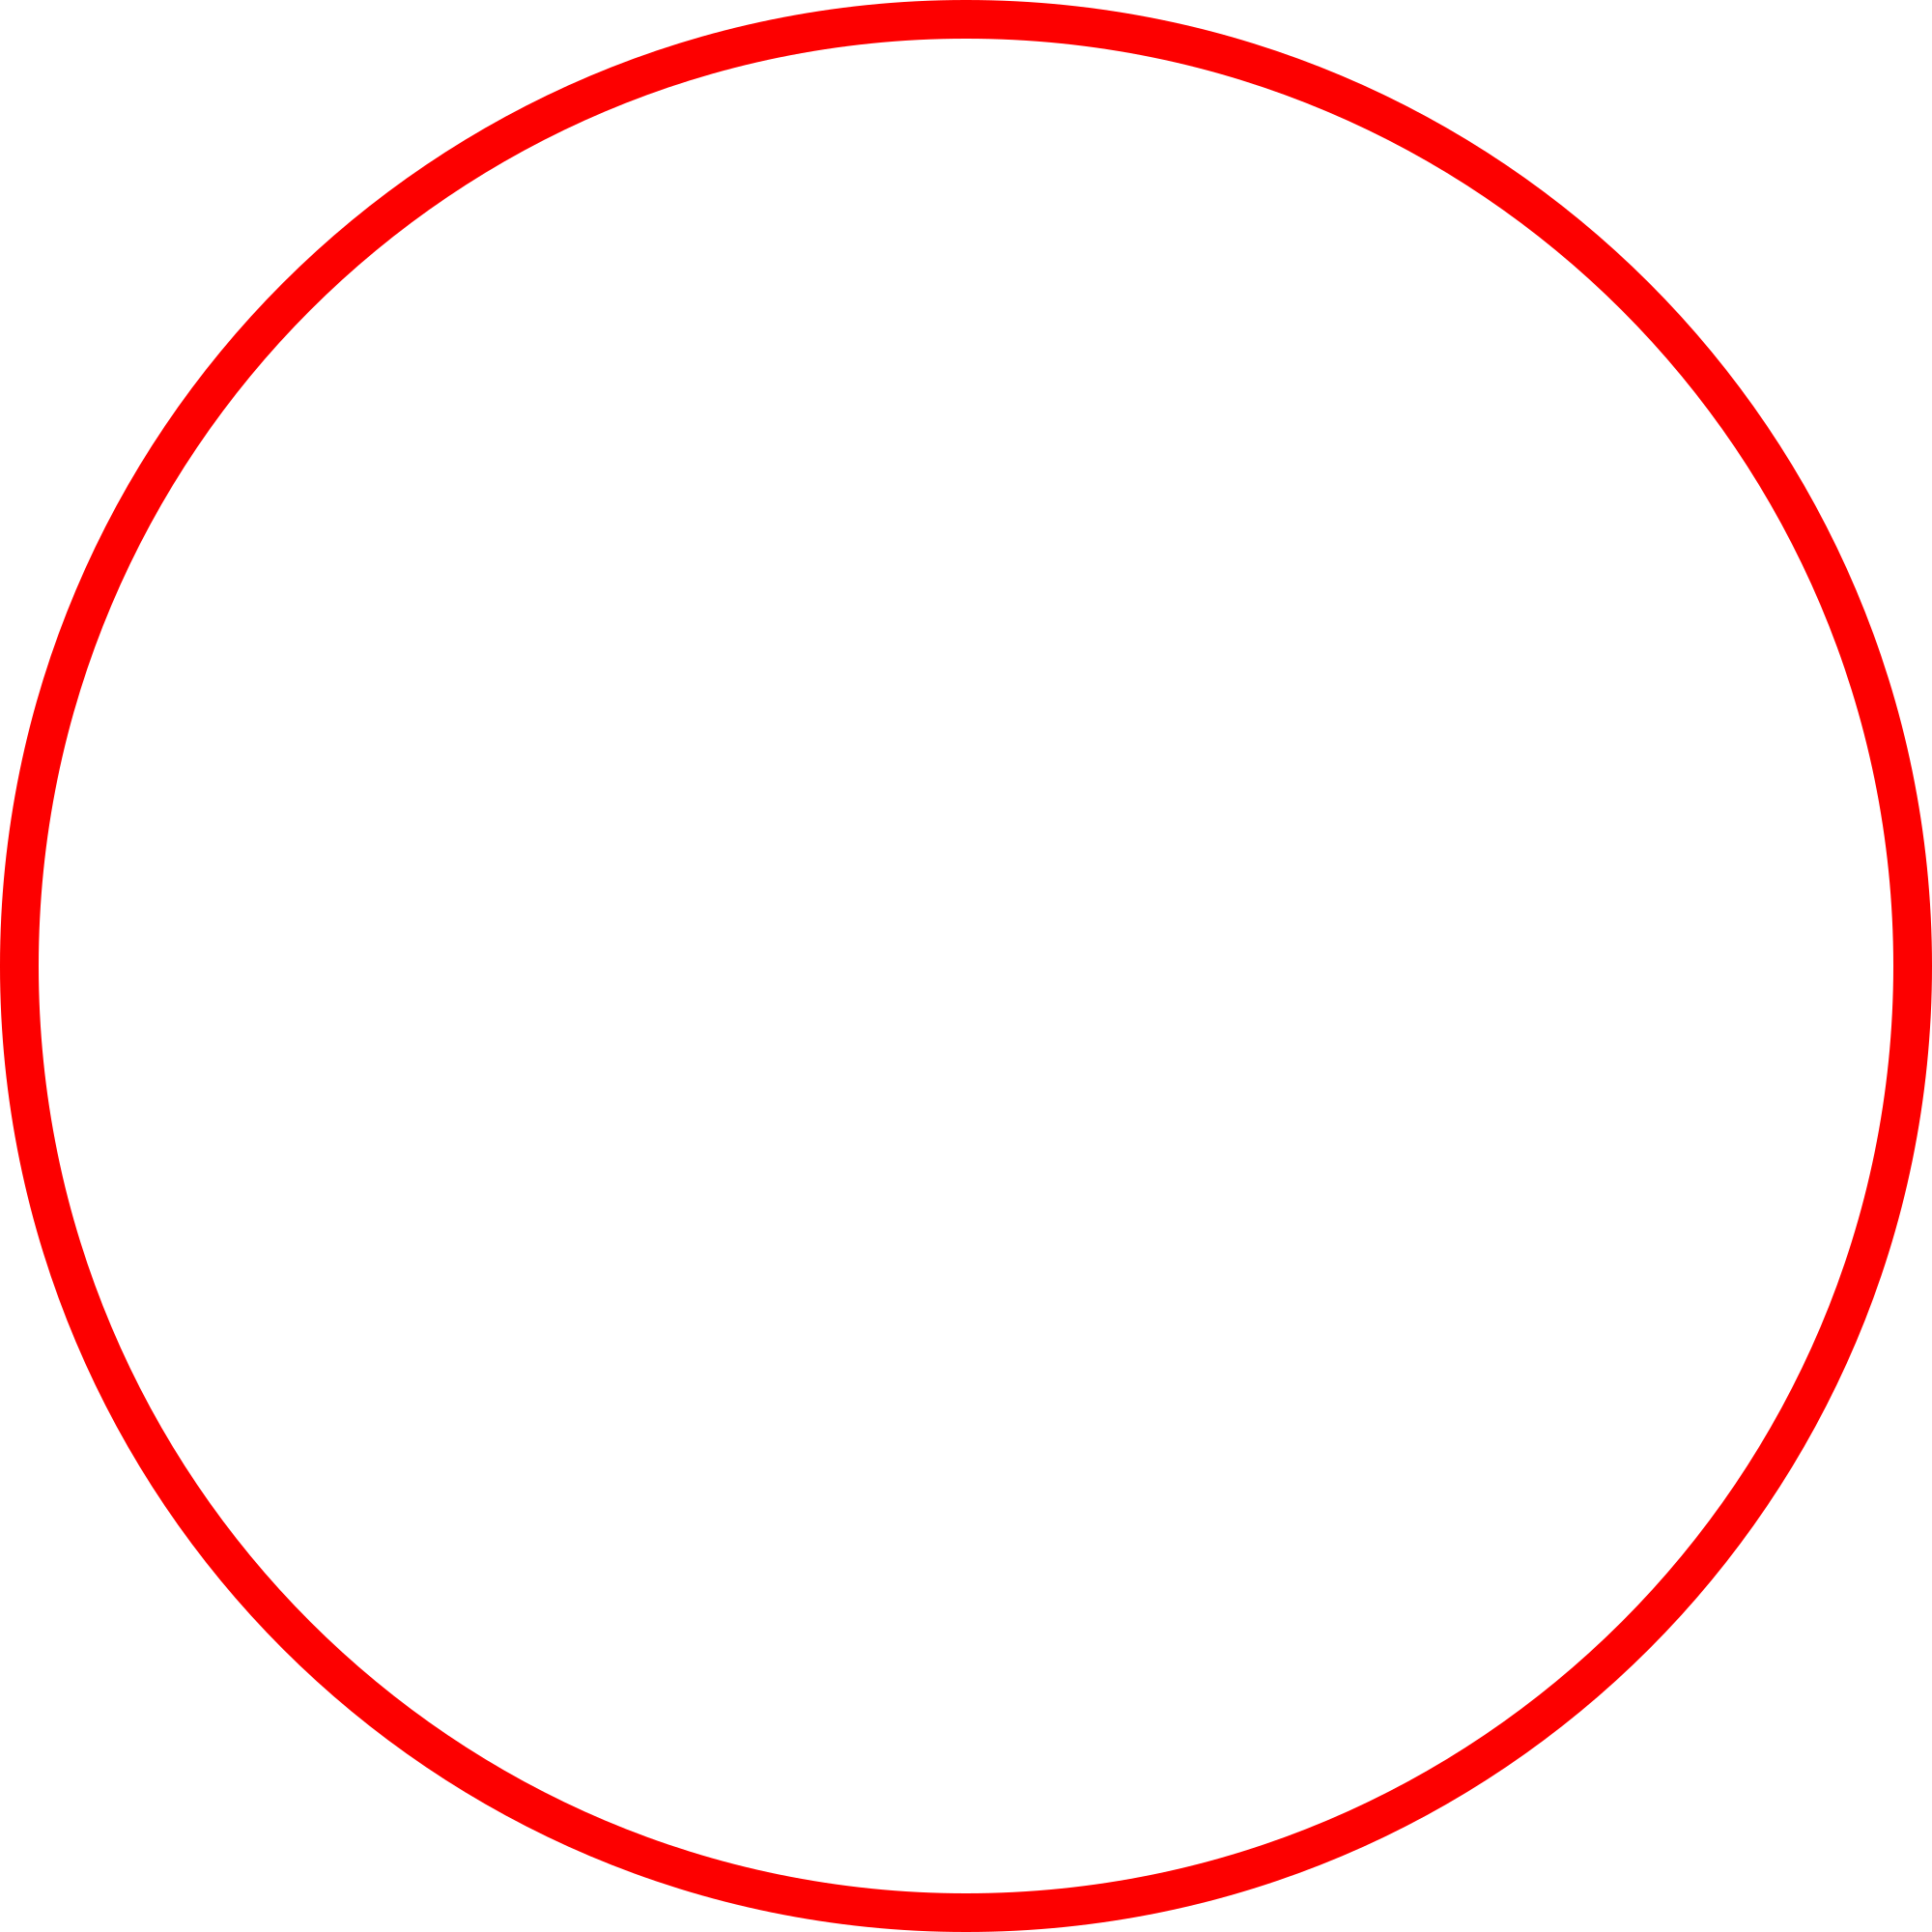 red circle outline png